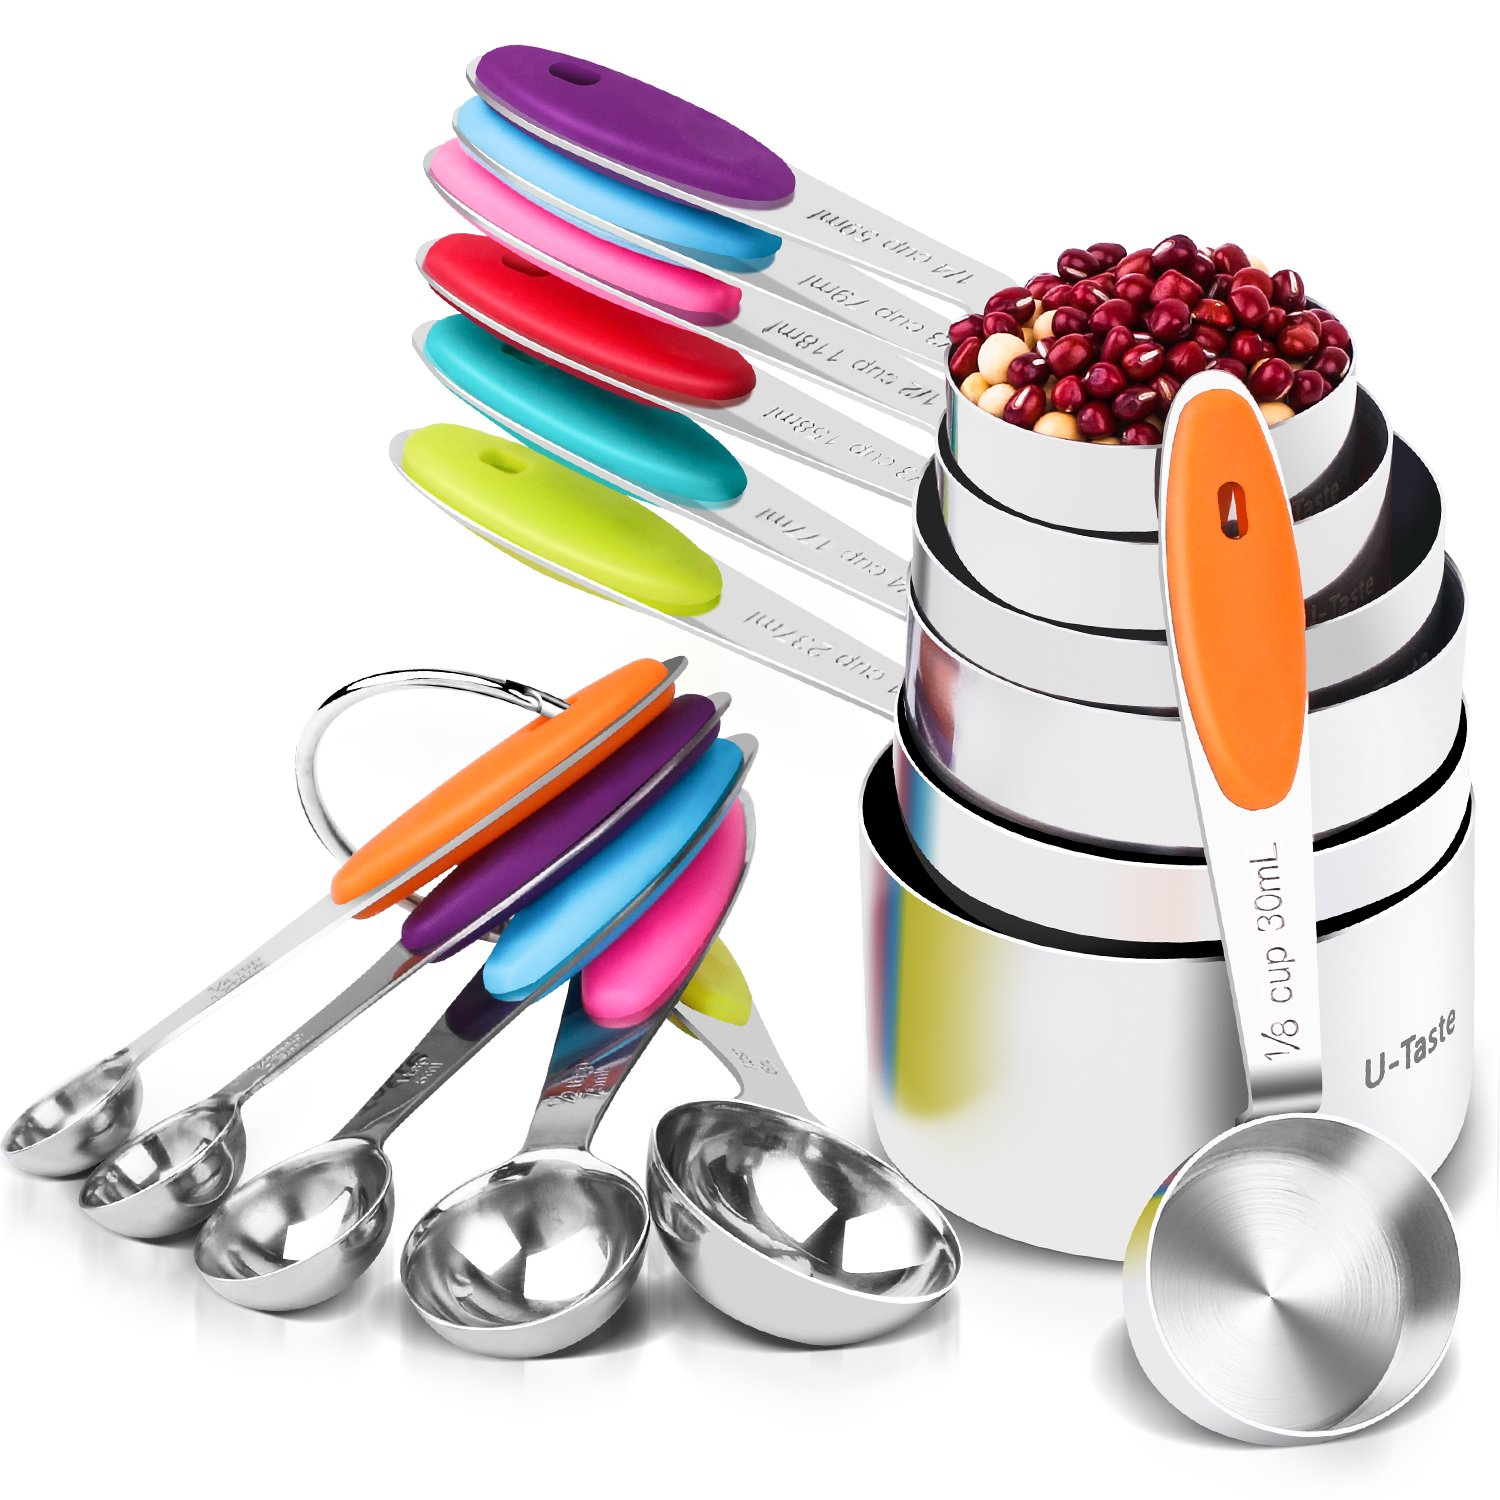 U-Taste 12 Piece Measuring Cups and Spoons Set in 18/8 Stainless Steel : 7 Measuring Cups & 5 Measuring Spoons by U-Taste